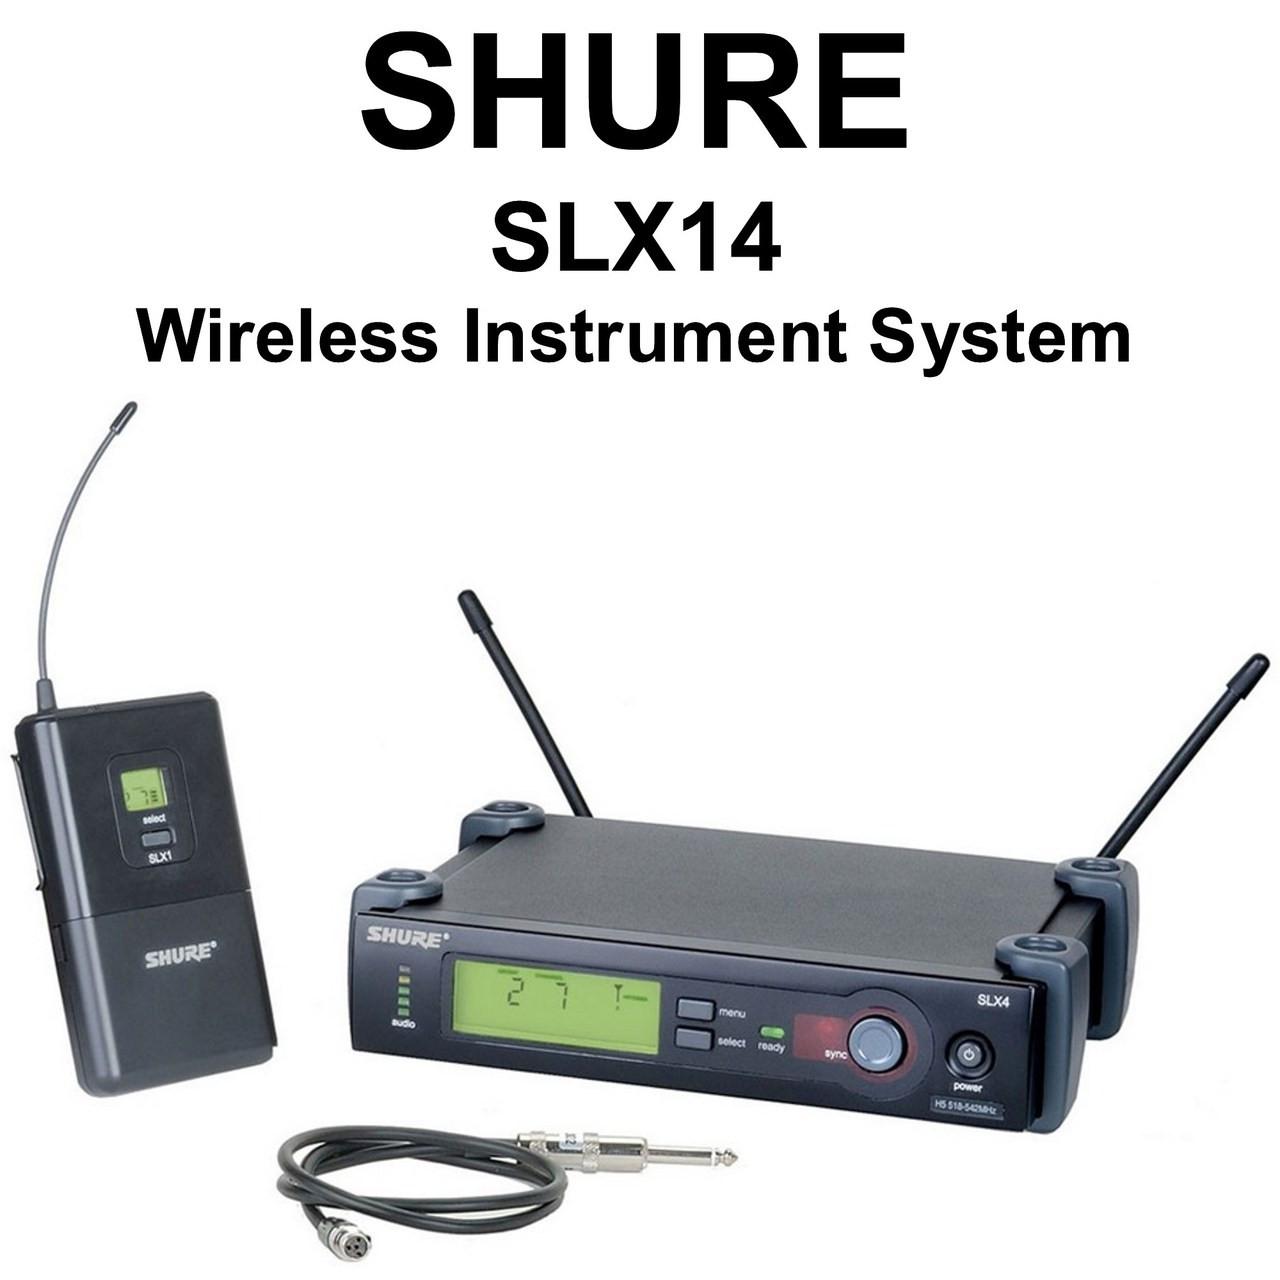 Shure Wired Microphones Promotion Shop For Promotional Www Mic Promotionshop Mono On Aliexpress Wiring Xlr Slx14 Versatile Instrument Wireless System 20